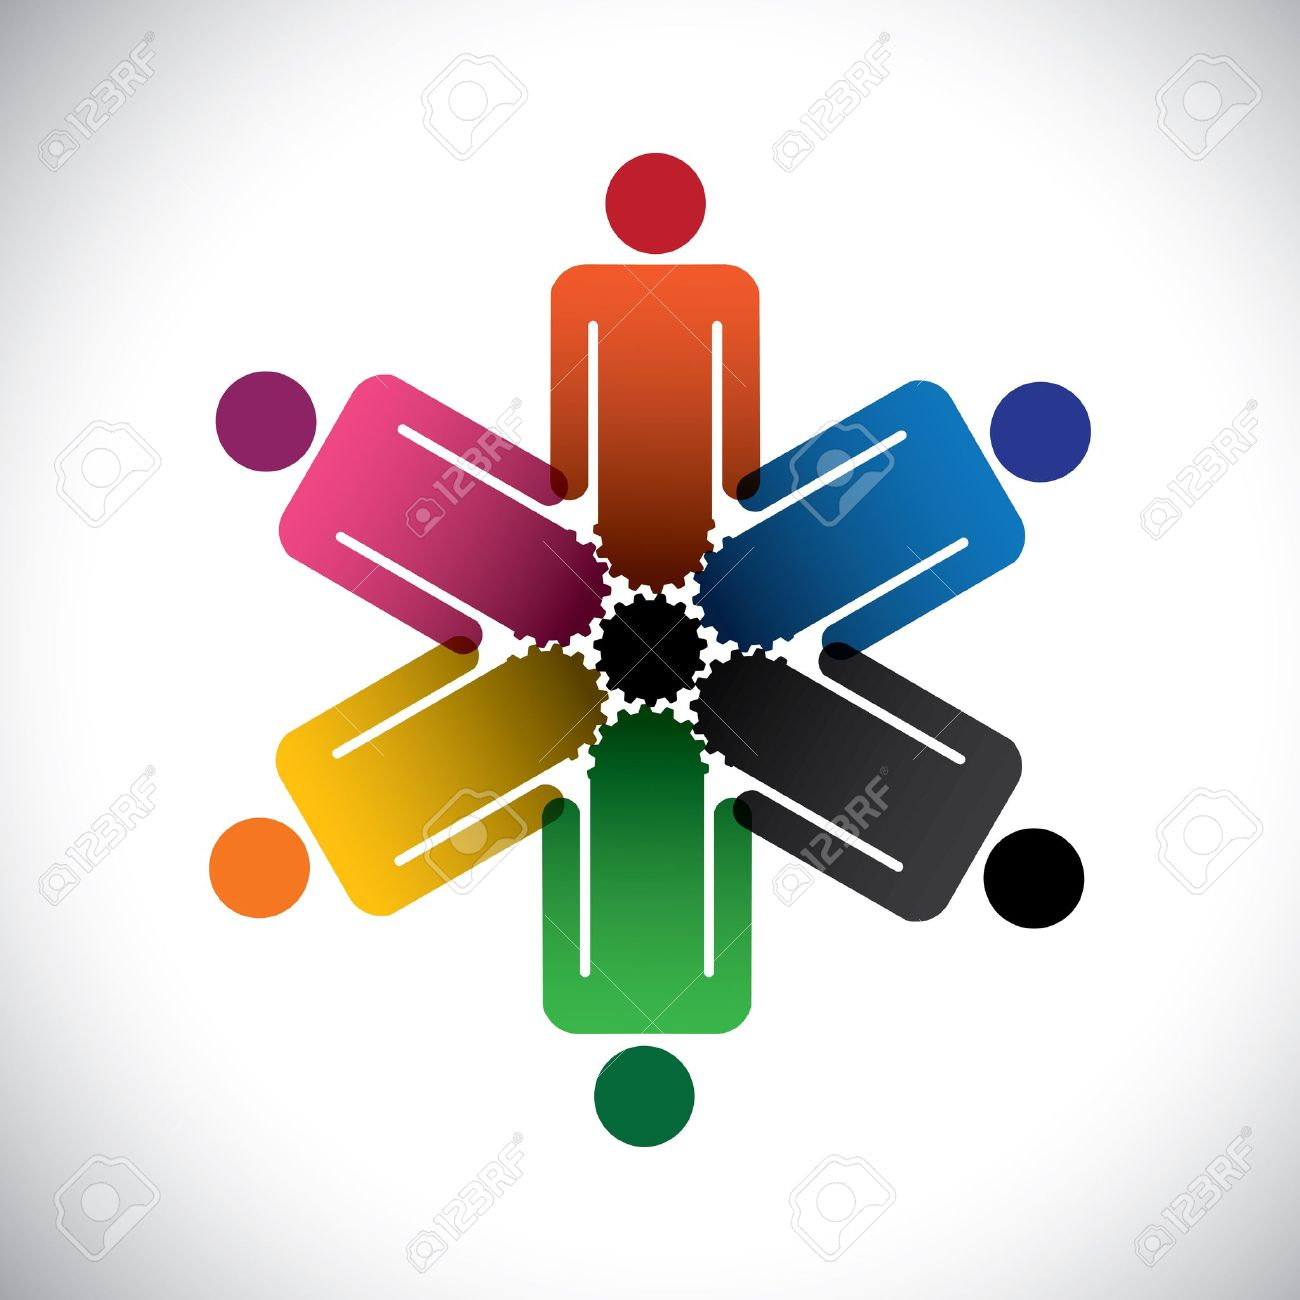 Colorful abstract people community as cog wheels simple graphic colorful abstract people community as cog wheels simple graphic this illustration can also represent sciox Images